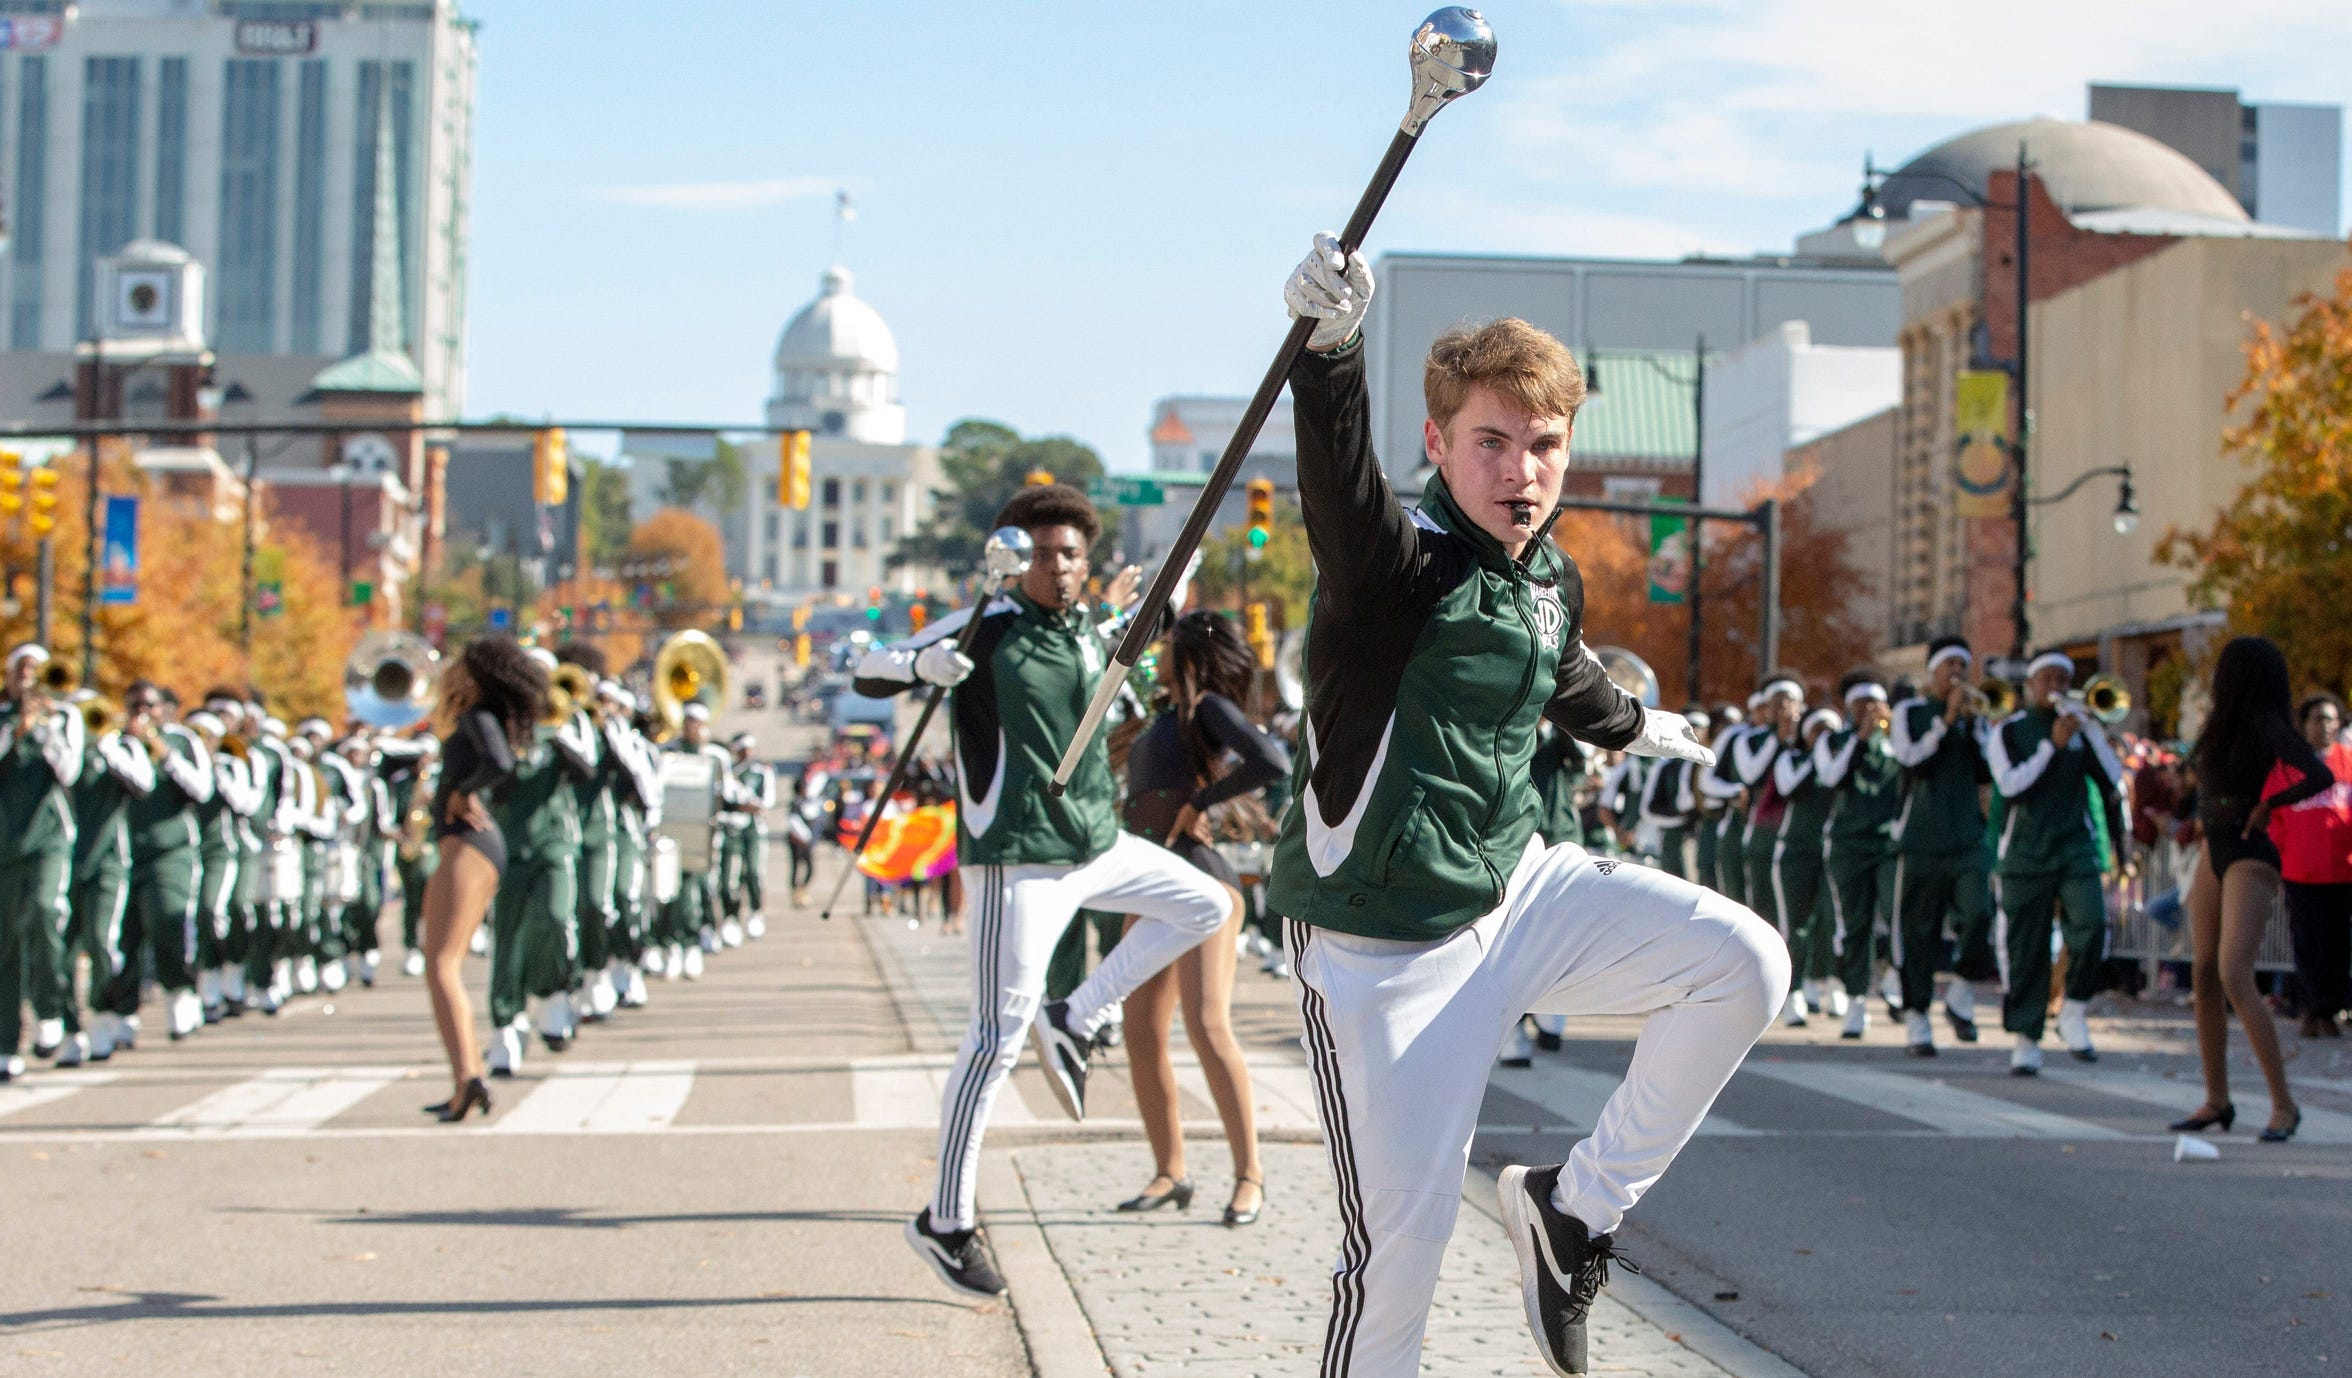 Justin Heideman, lead drum major who went viral recently, leads his Jeff Davis band down Dexter Avenue to the shouts of many adoring fans.